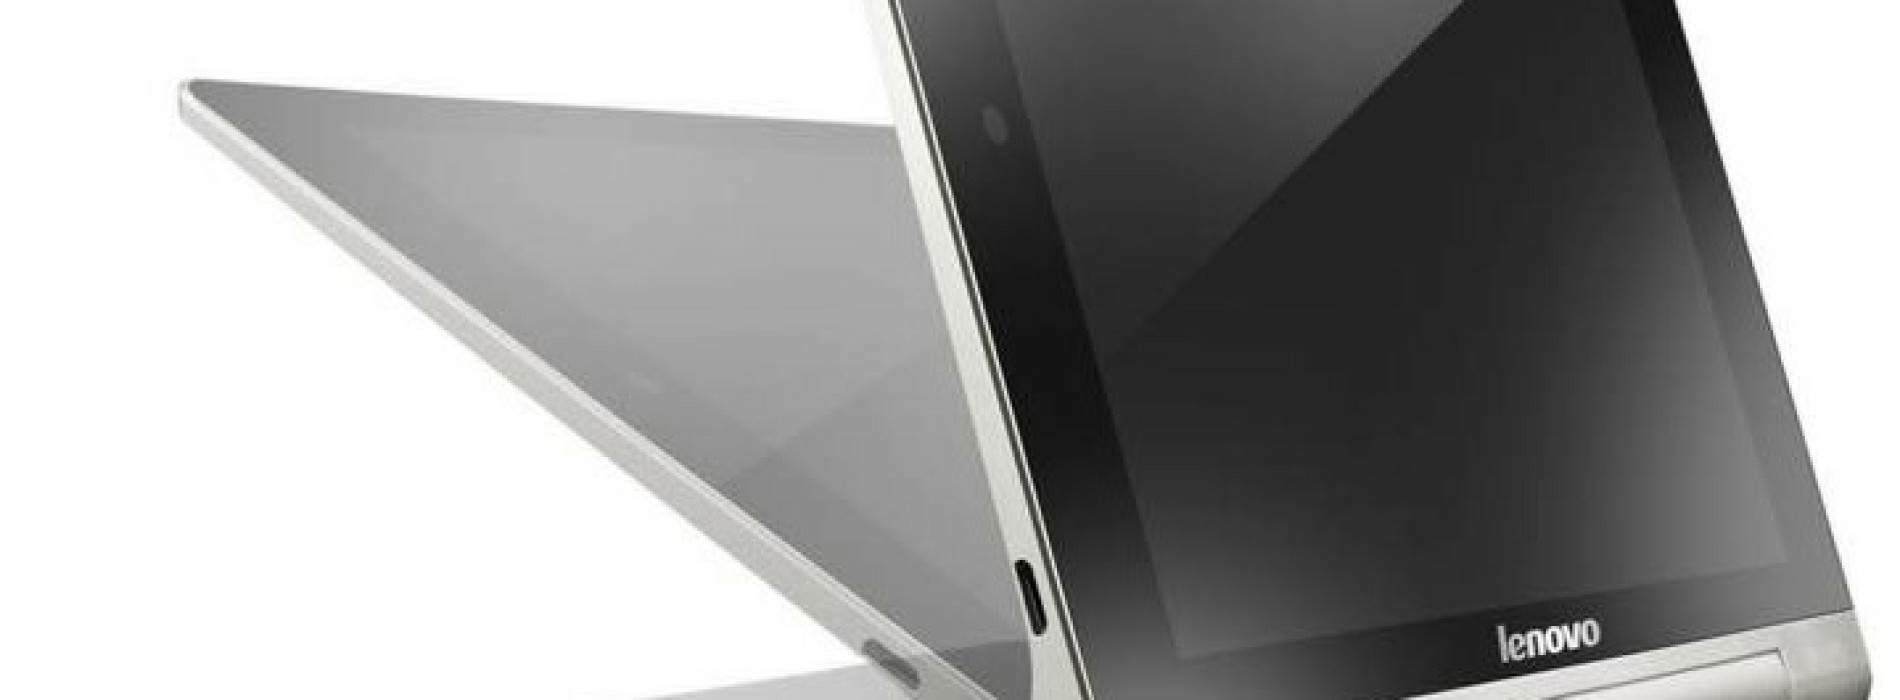 Yoga Tablet multimodo de Lenovo